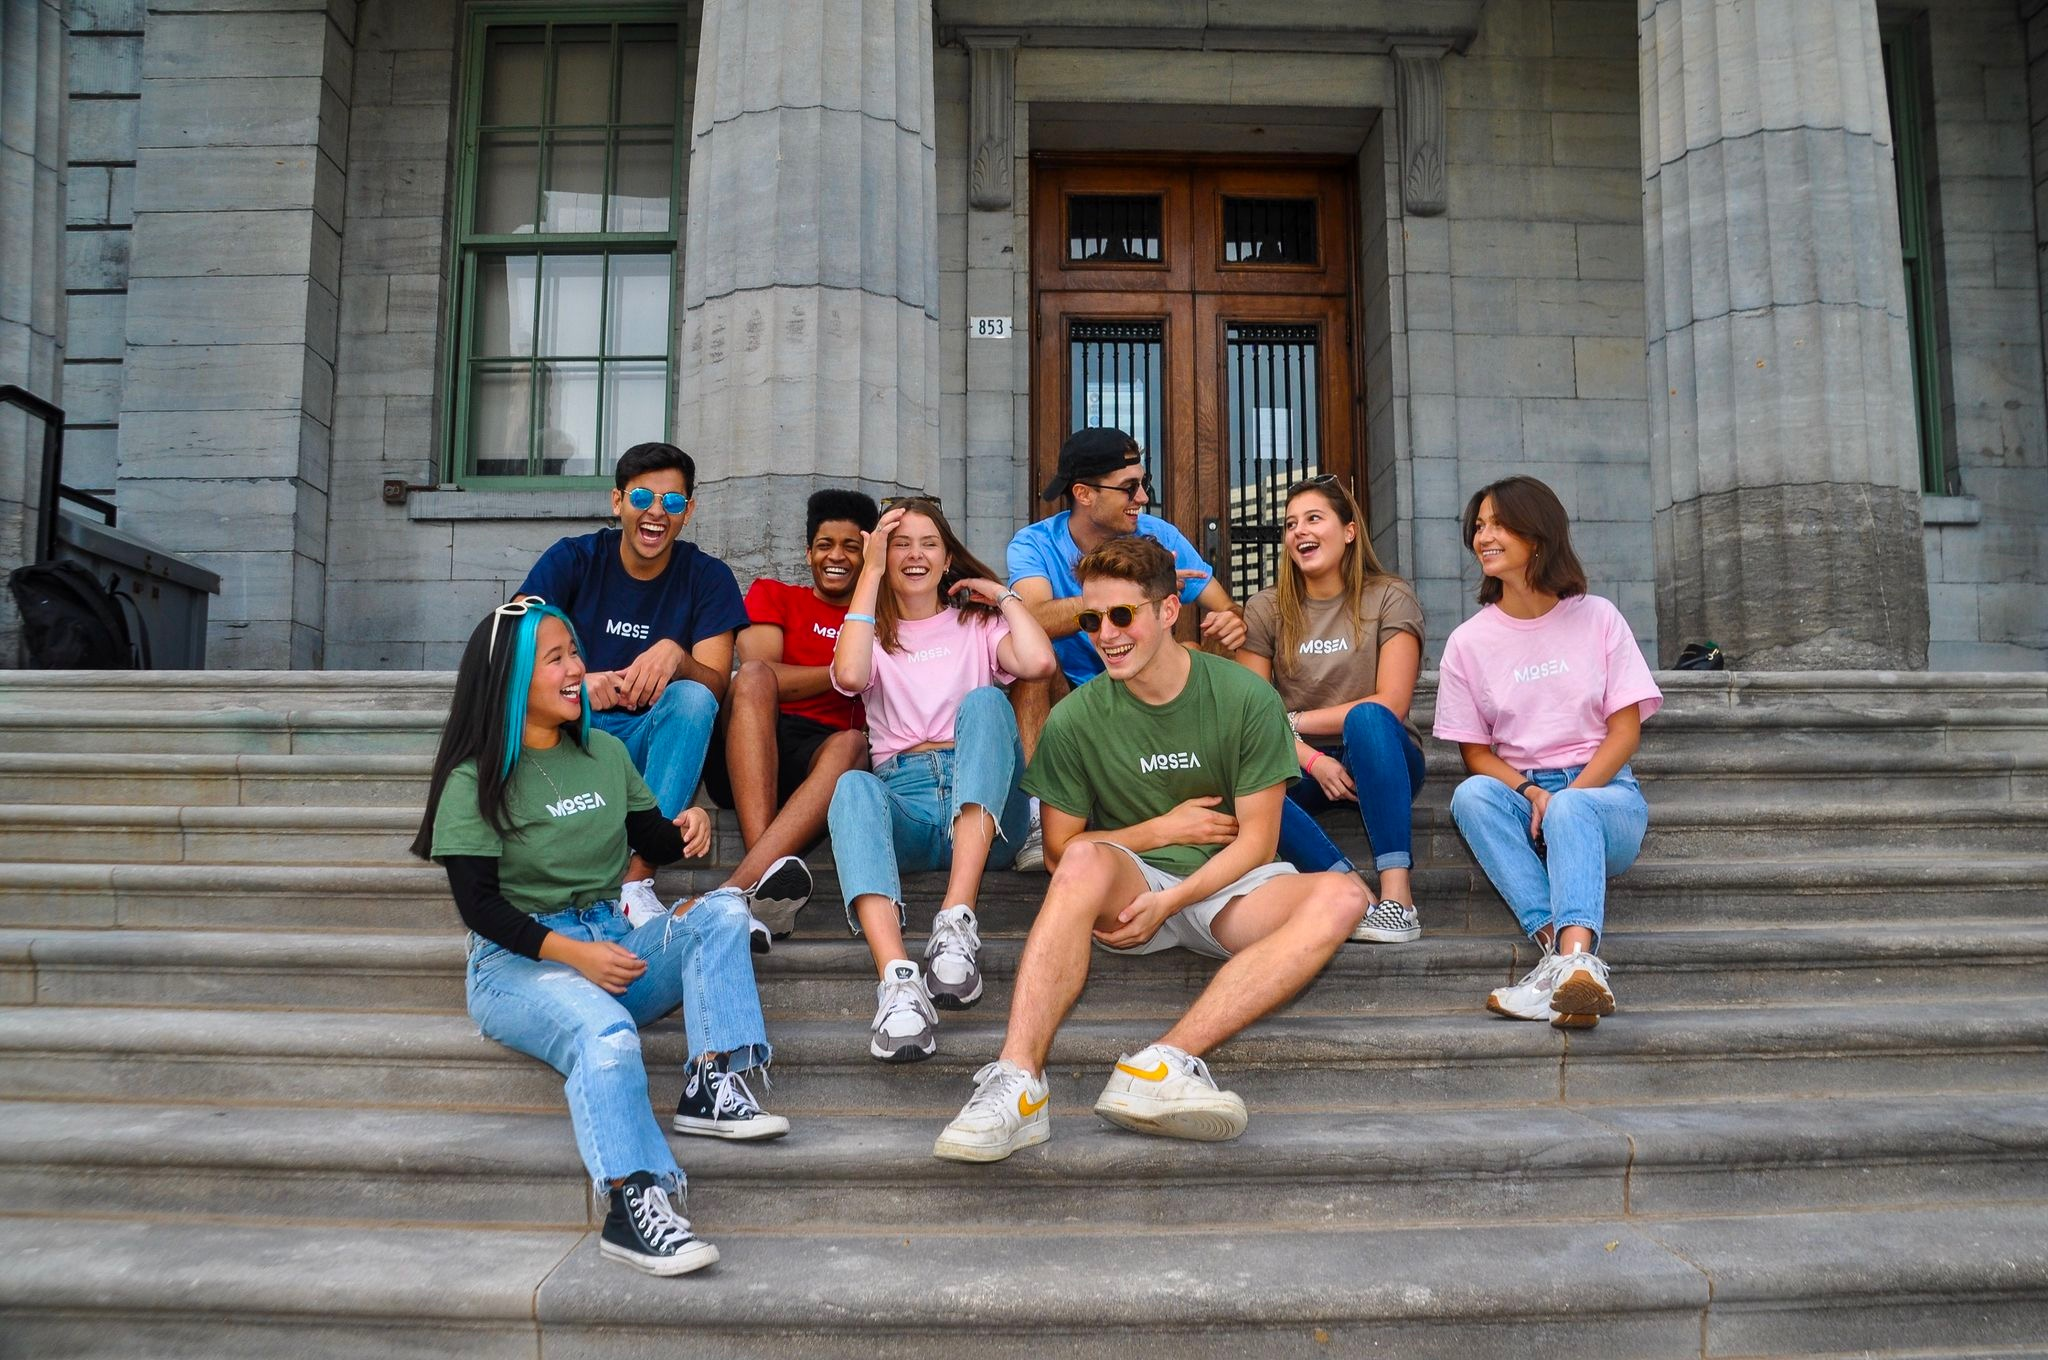 Groups of students sitting on steps wearing Mosea swag